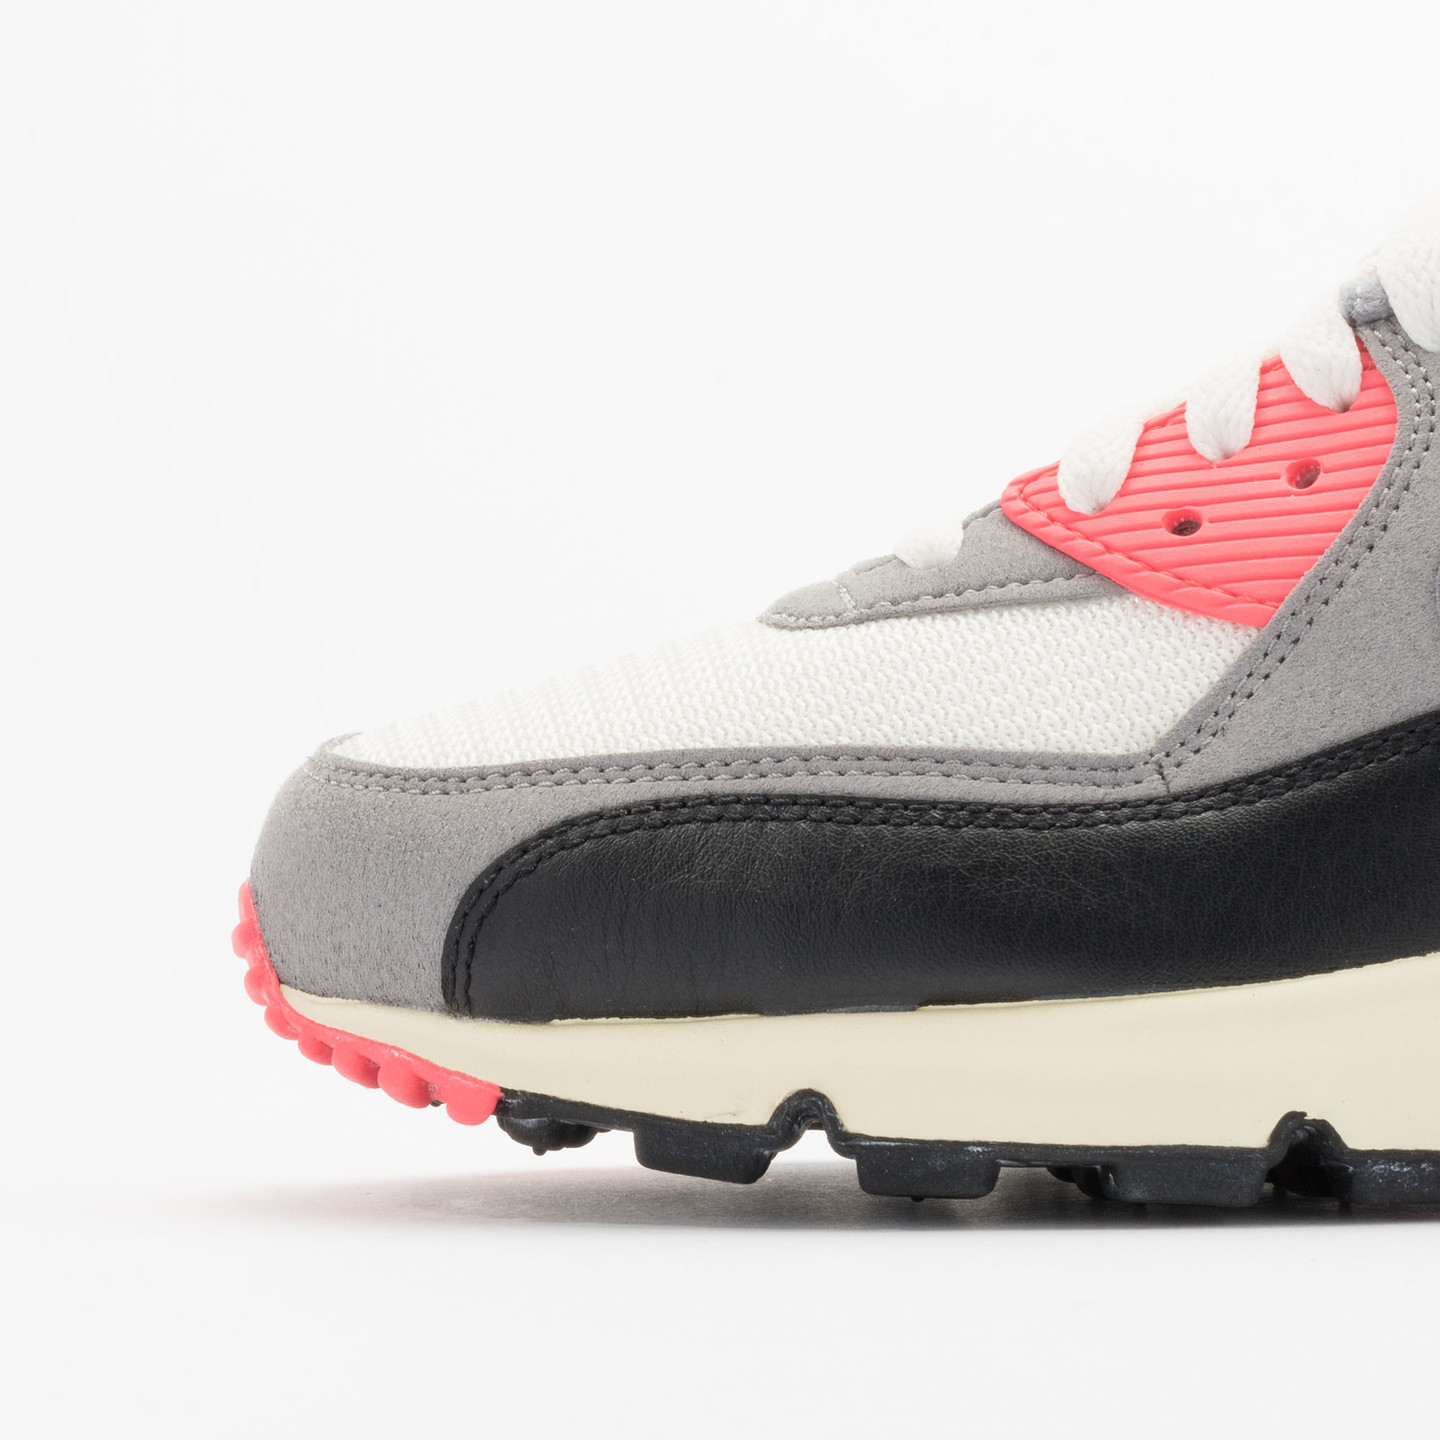 Nike Air Max 90 OG Vintage Infrared Sail/Cool Grey-Mdm Grey-Infrrd 543361-161-44